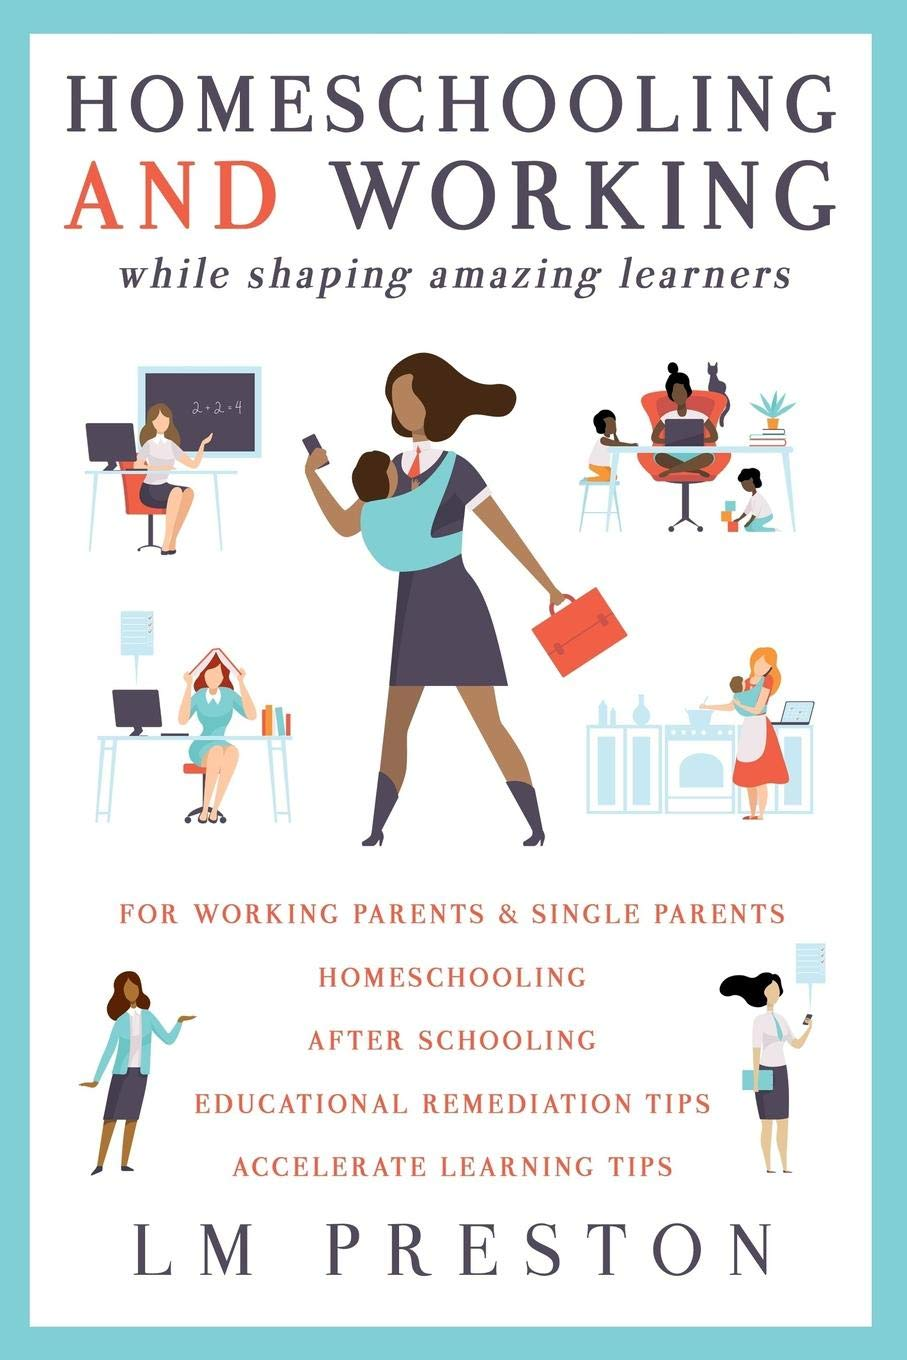 homeschooling and working